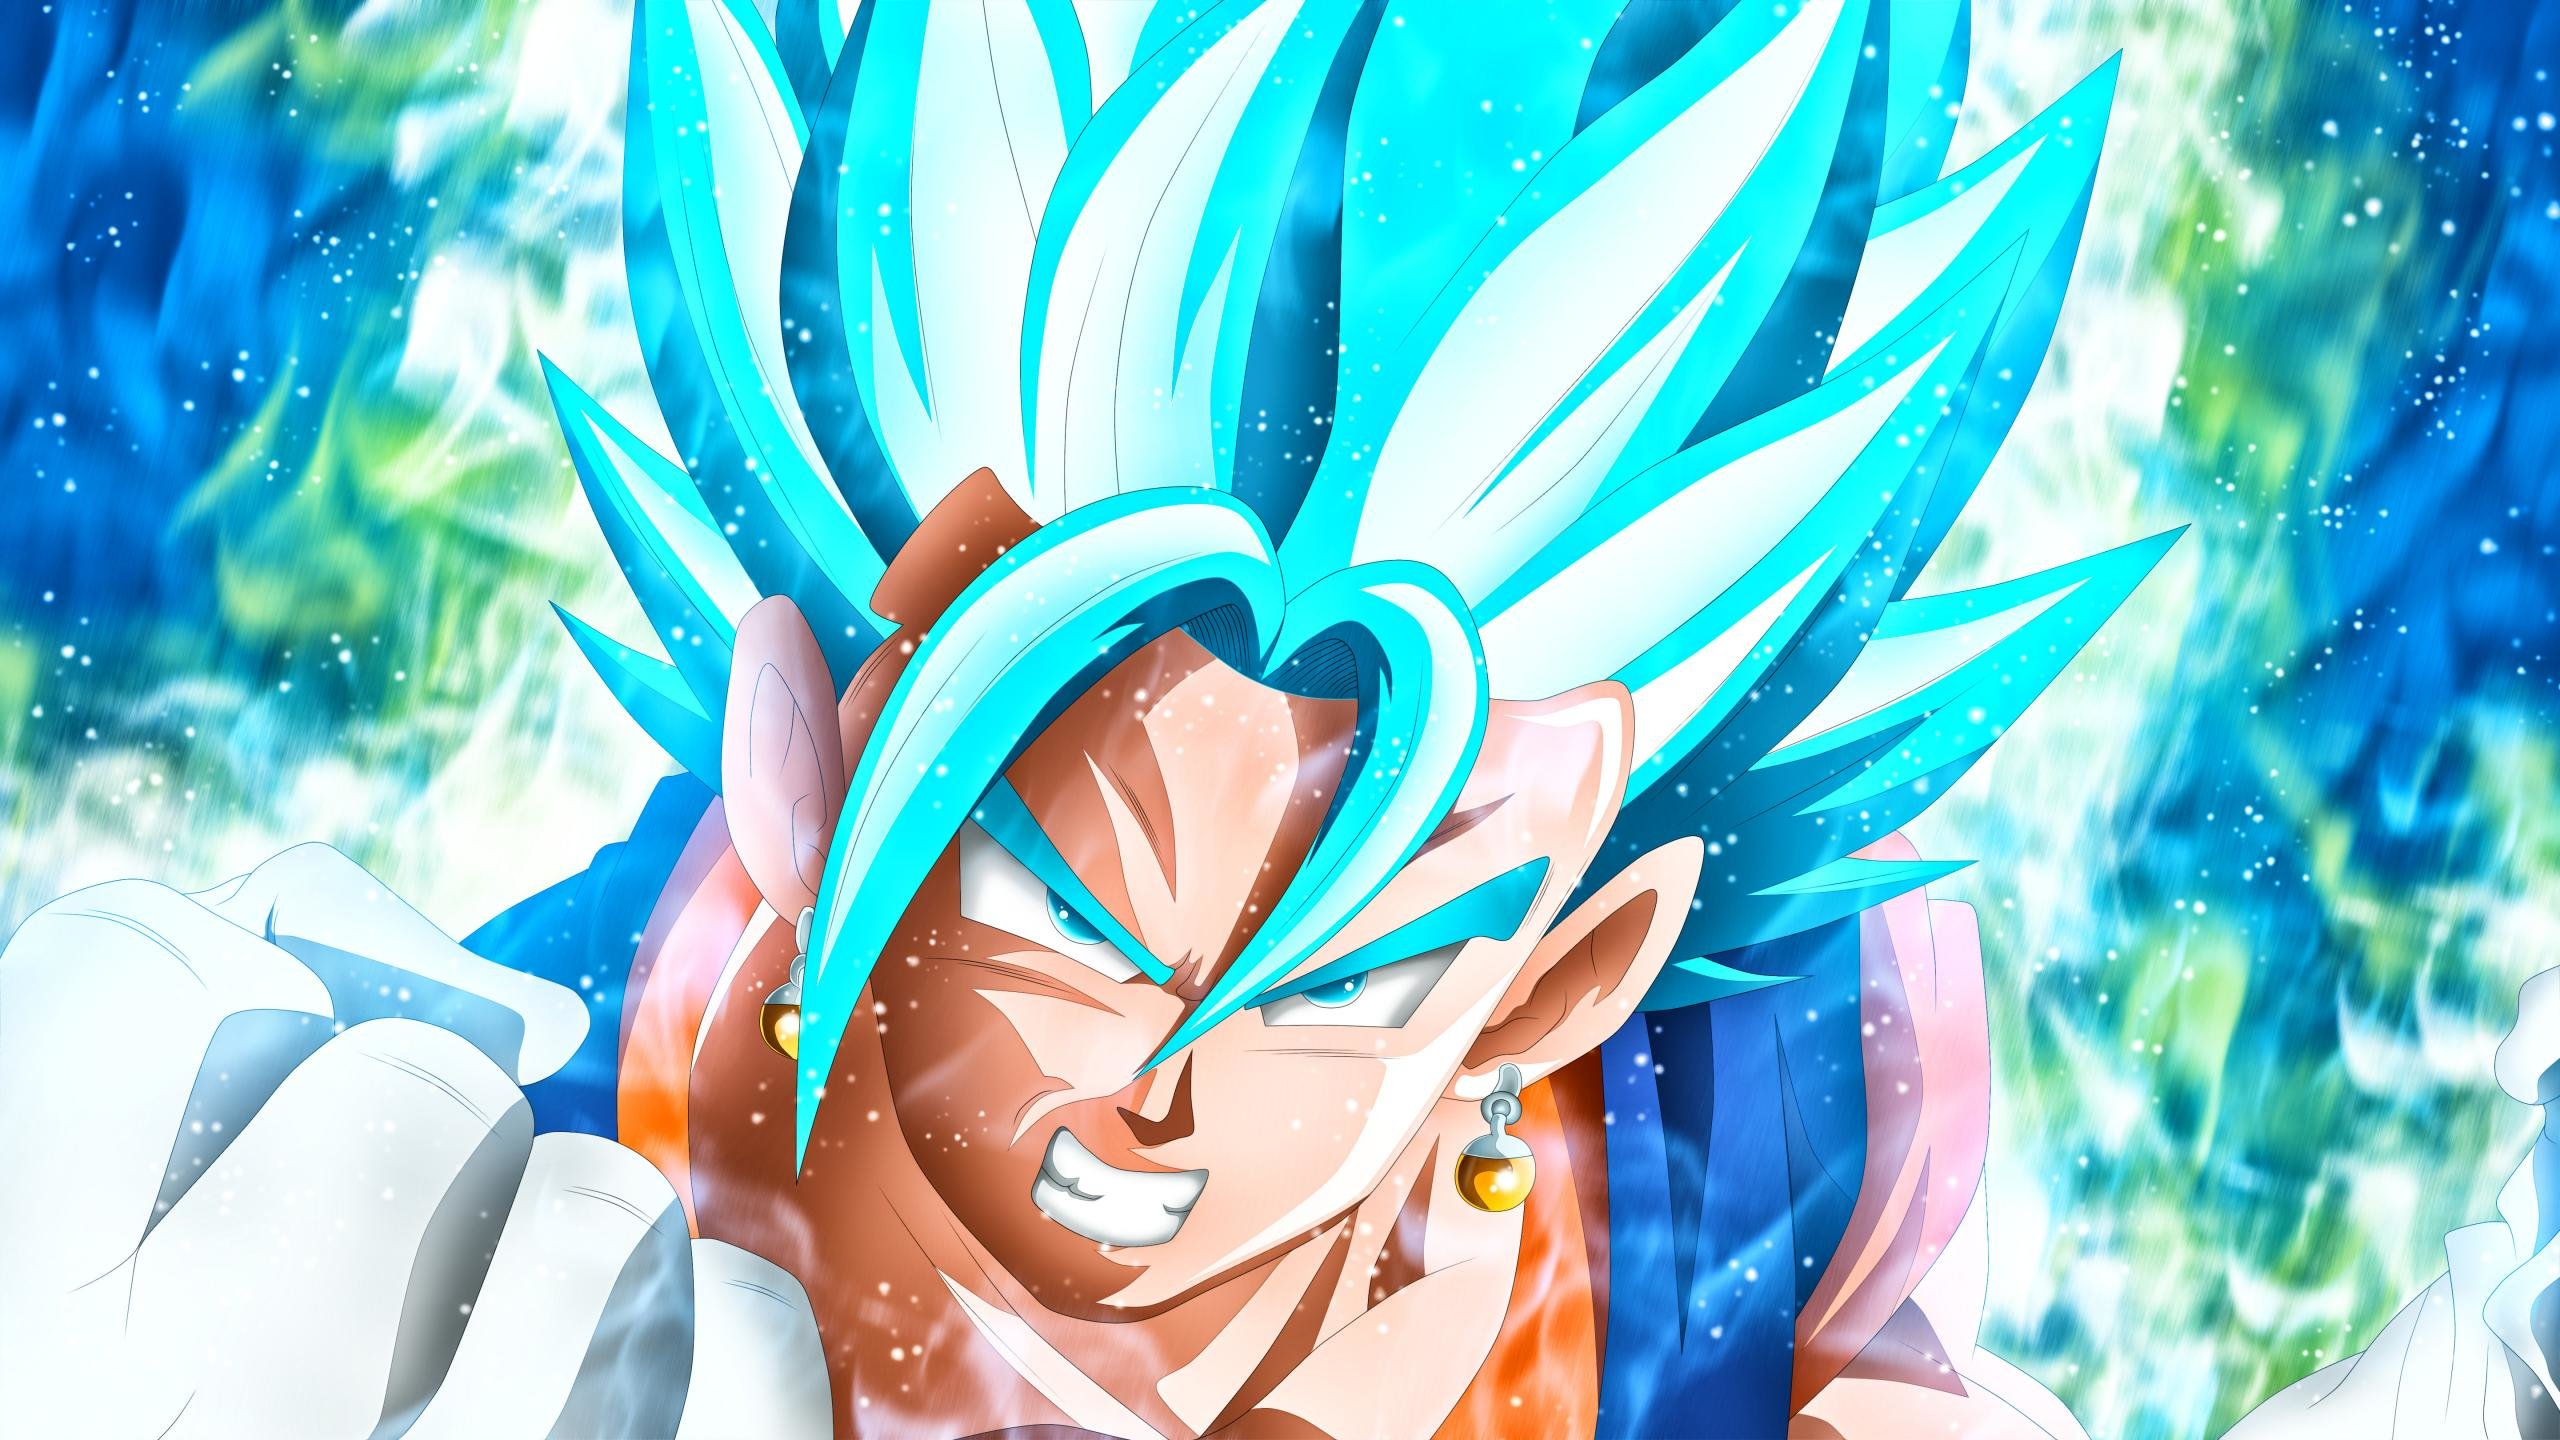 High resolution dragon ball super hd 2560x1440 background - Dragon ball super background music mp3 download ...